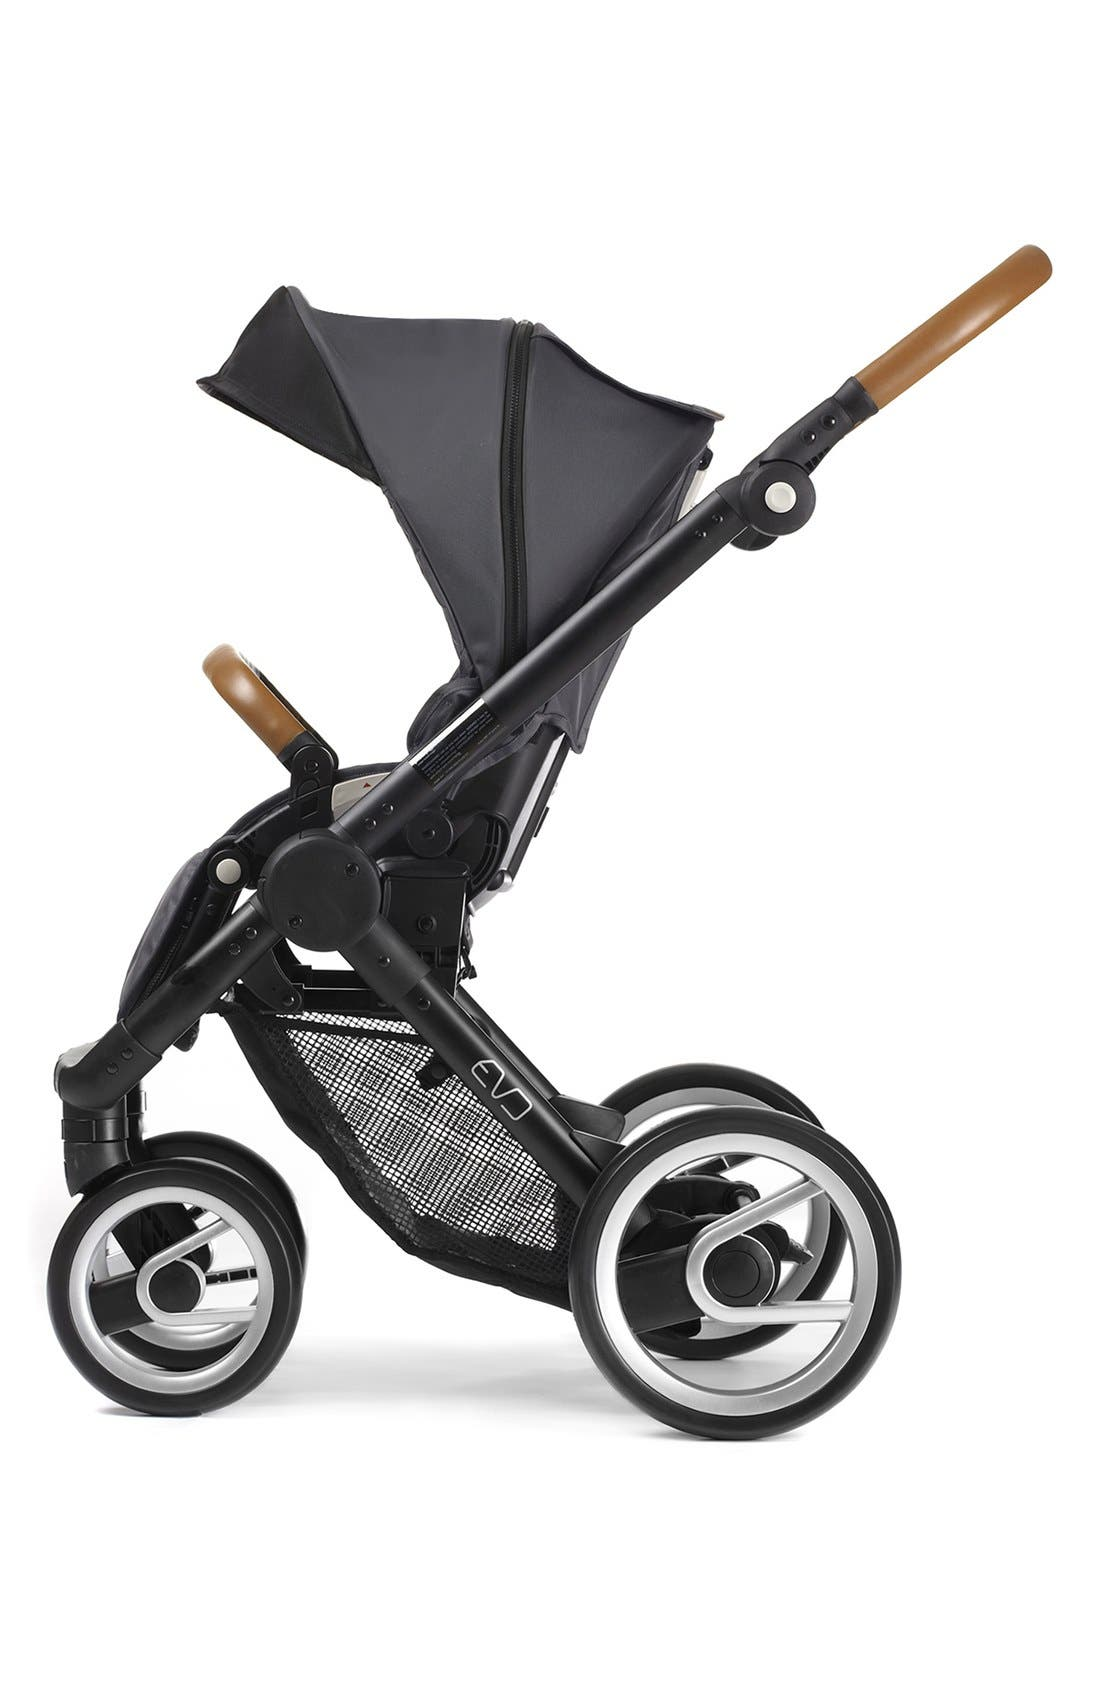 Evo - Urban Nomad Stroller,                             Main thumbnail 1, color,                             001